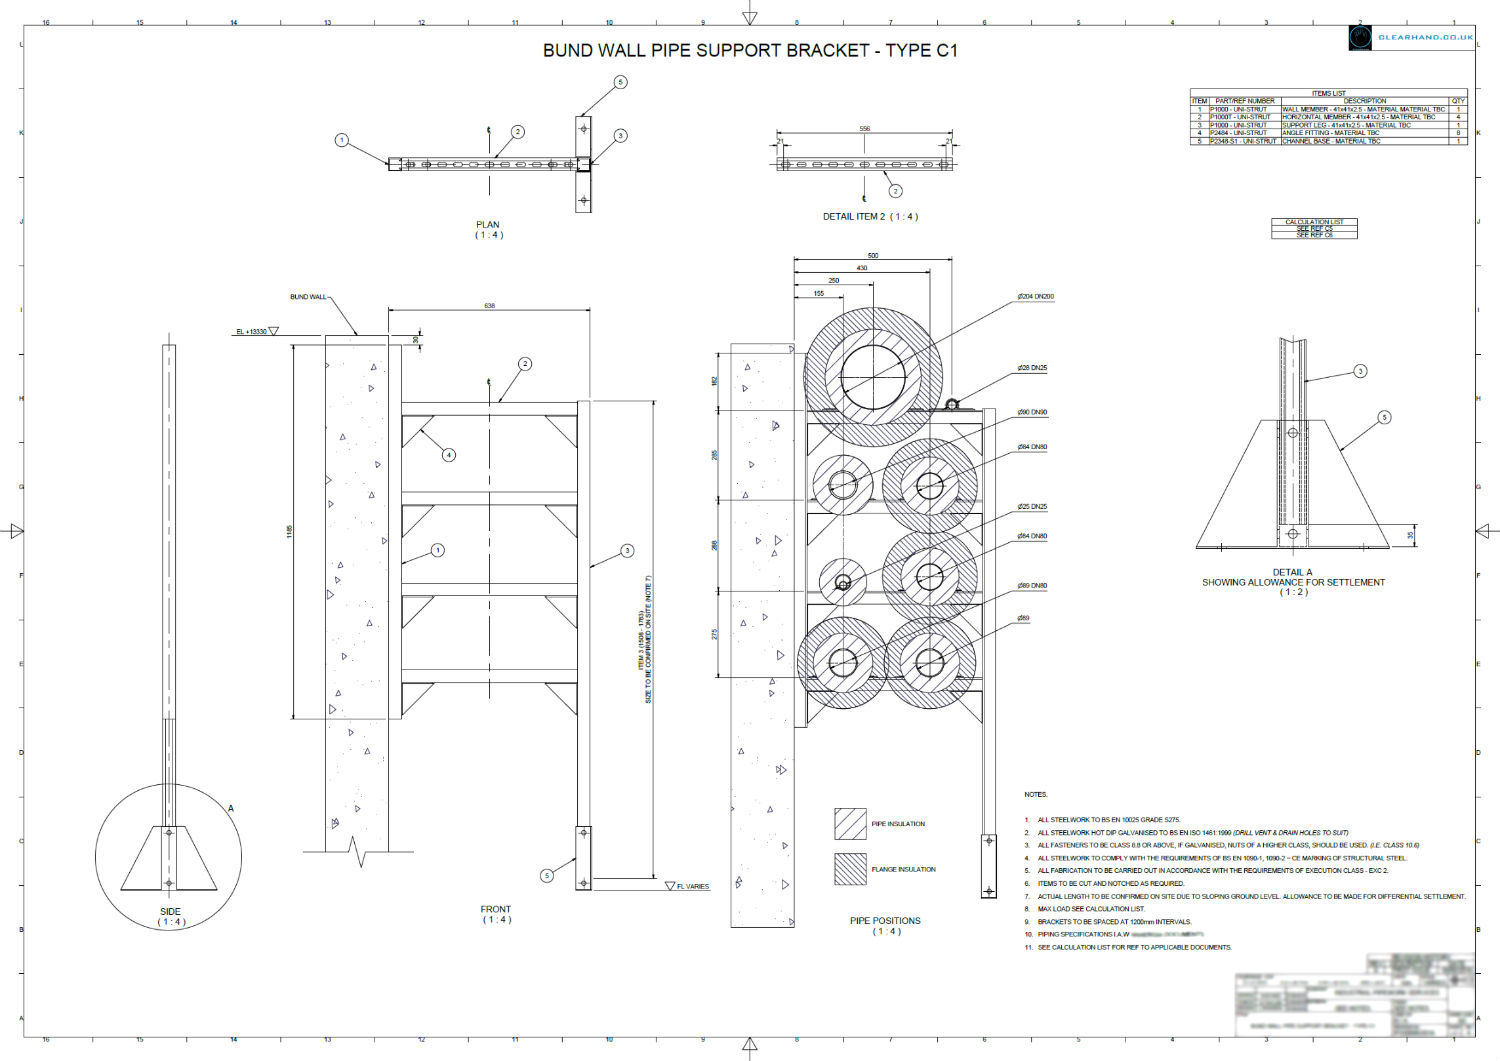 Computer Aided Design Cad 3d Modelling 2d Drawing Services Wall Schematic Engineering Diagram Consulting Service Provider Delivering And